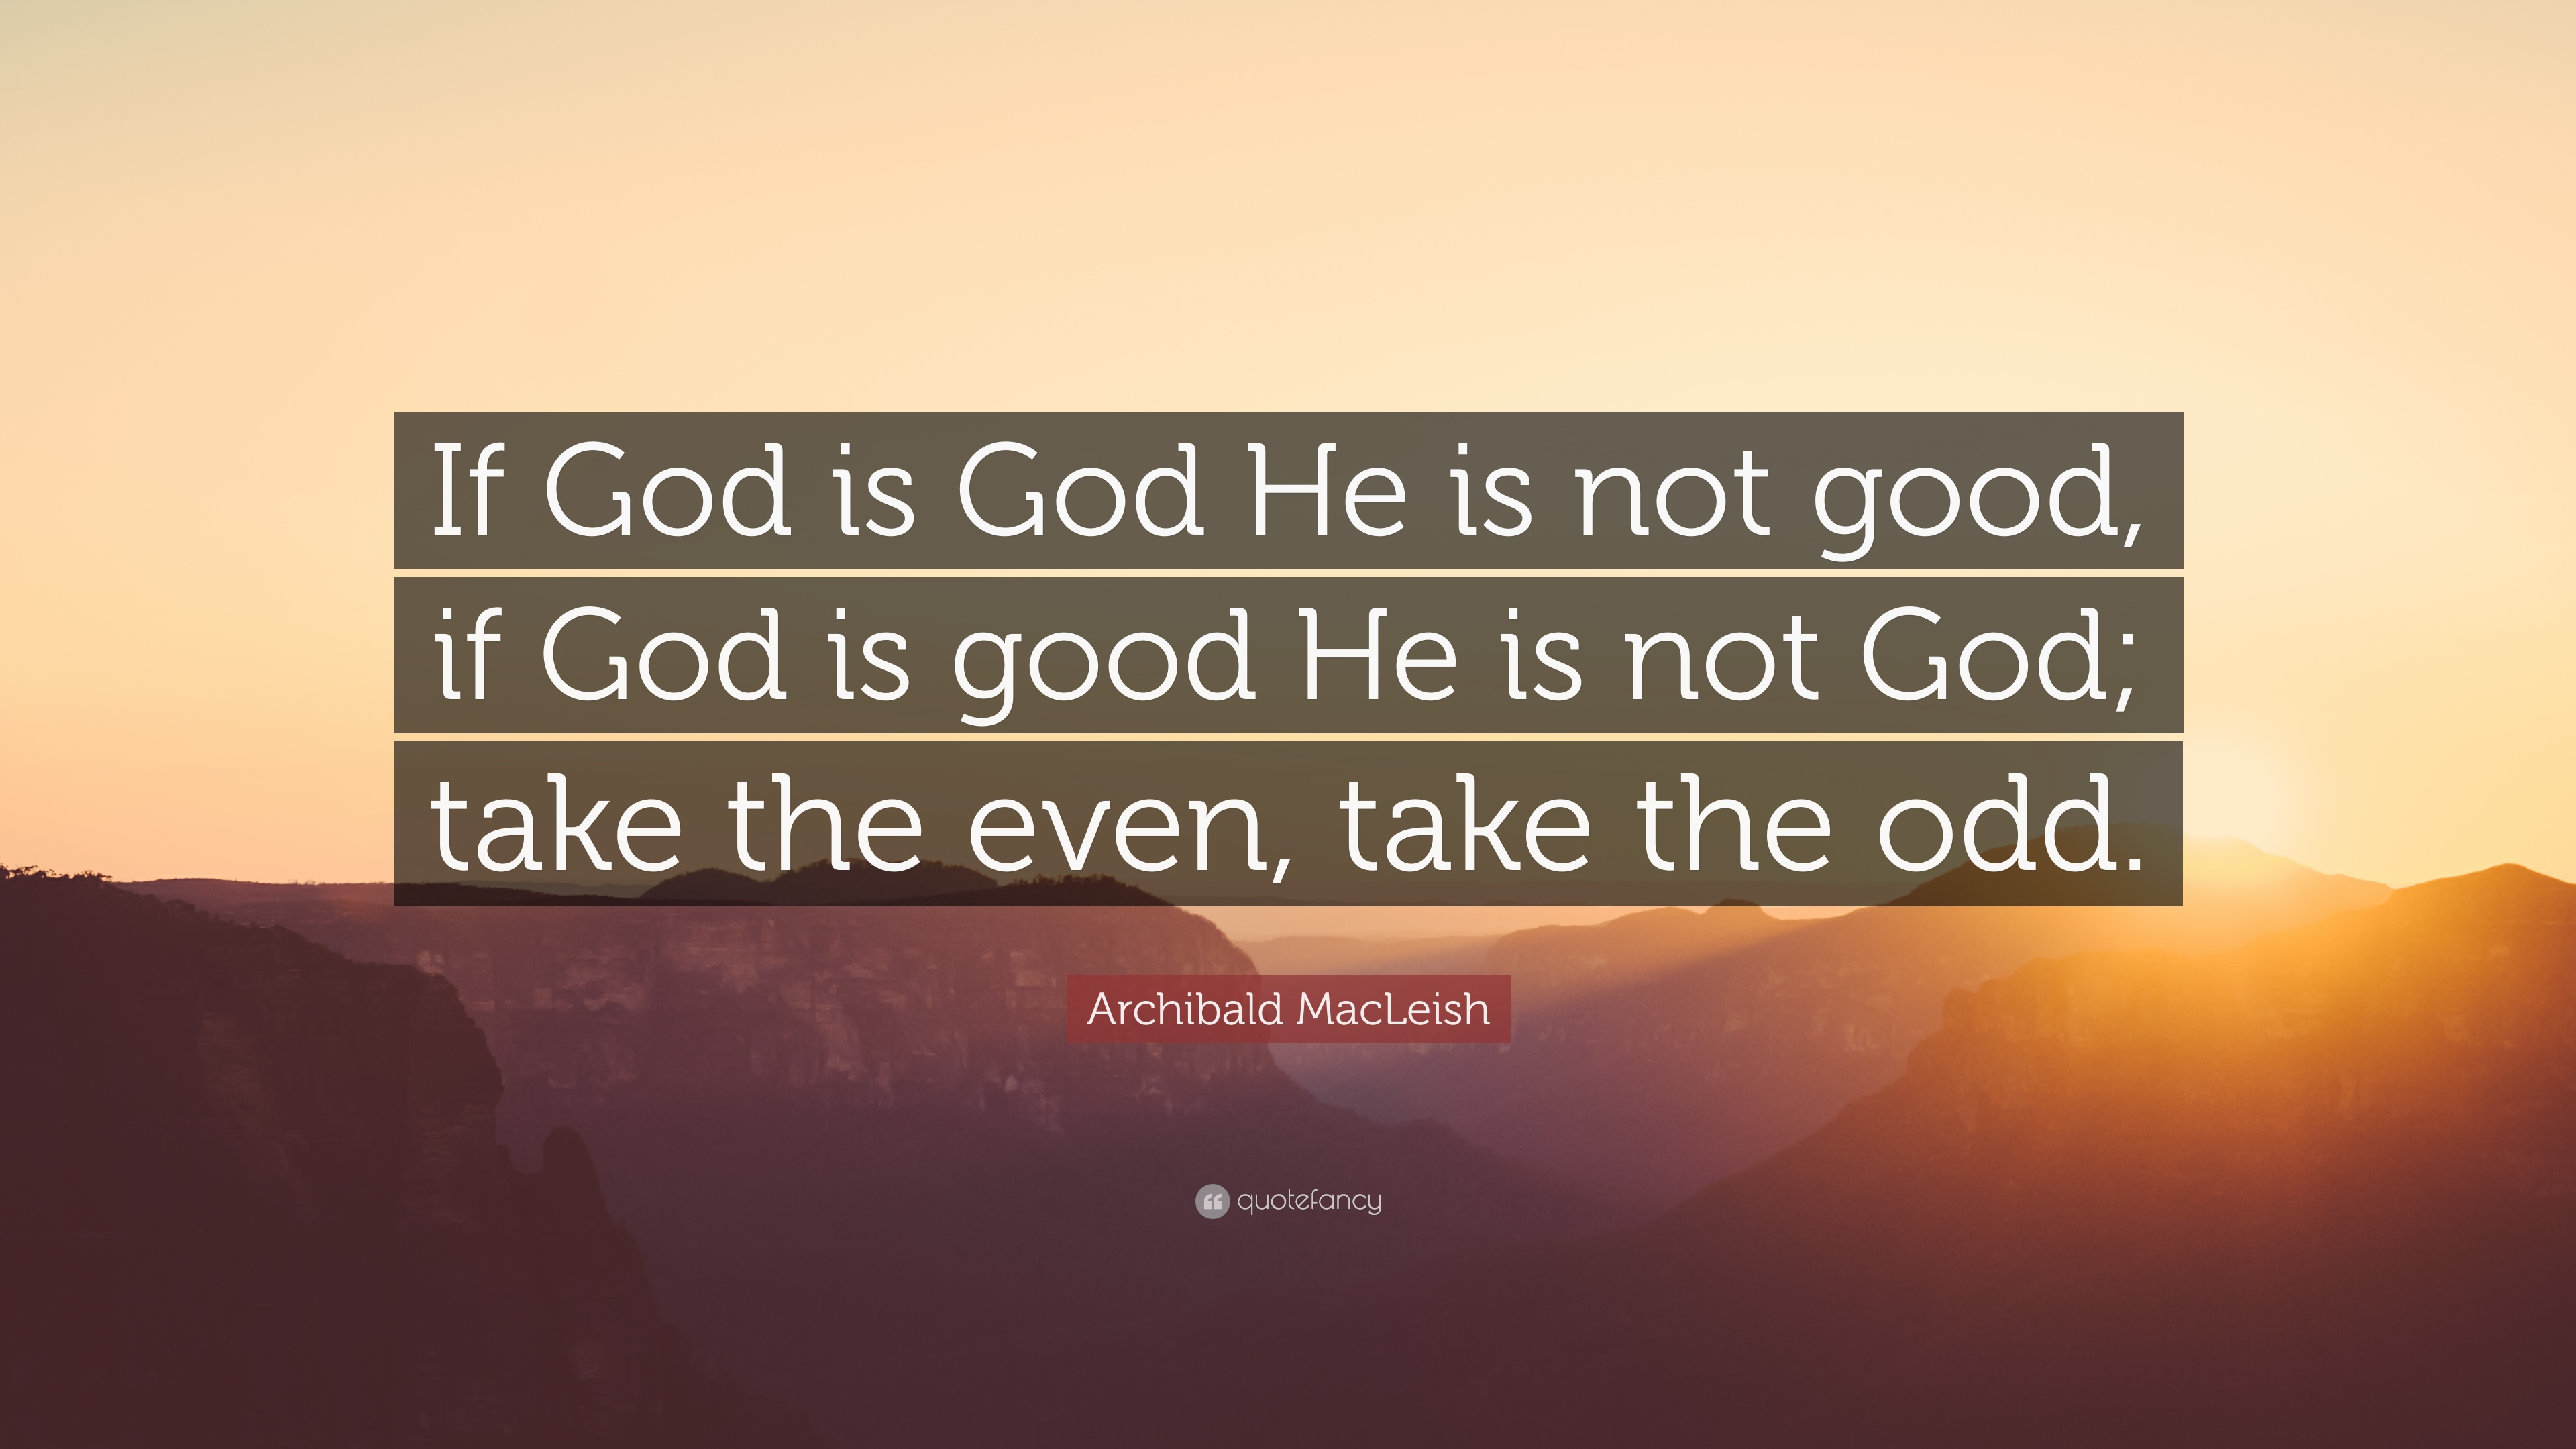 Archibald macleish quote if god is god he is not good if god